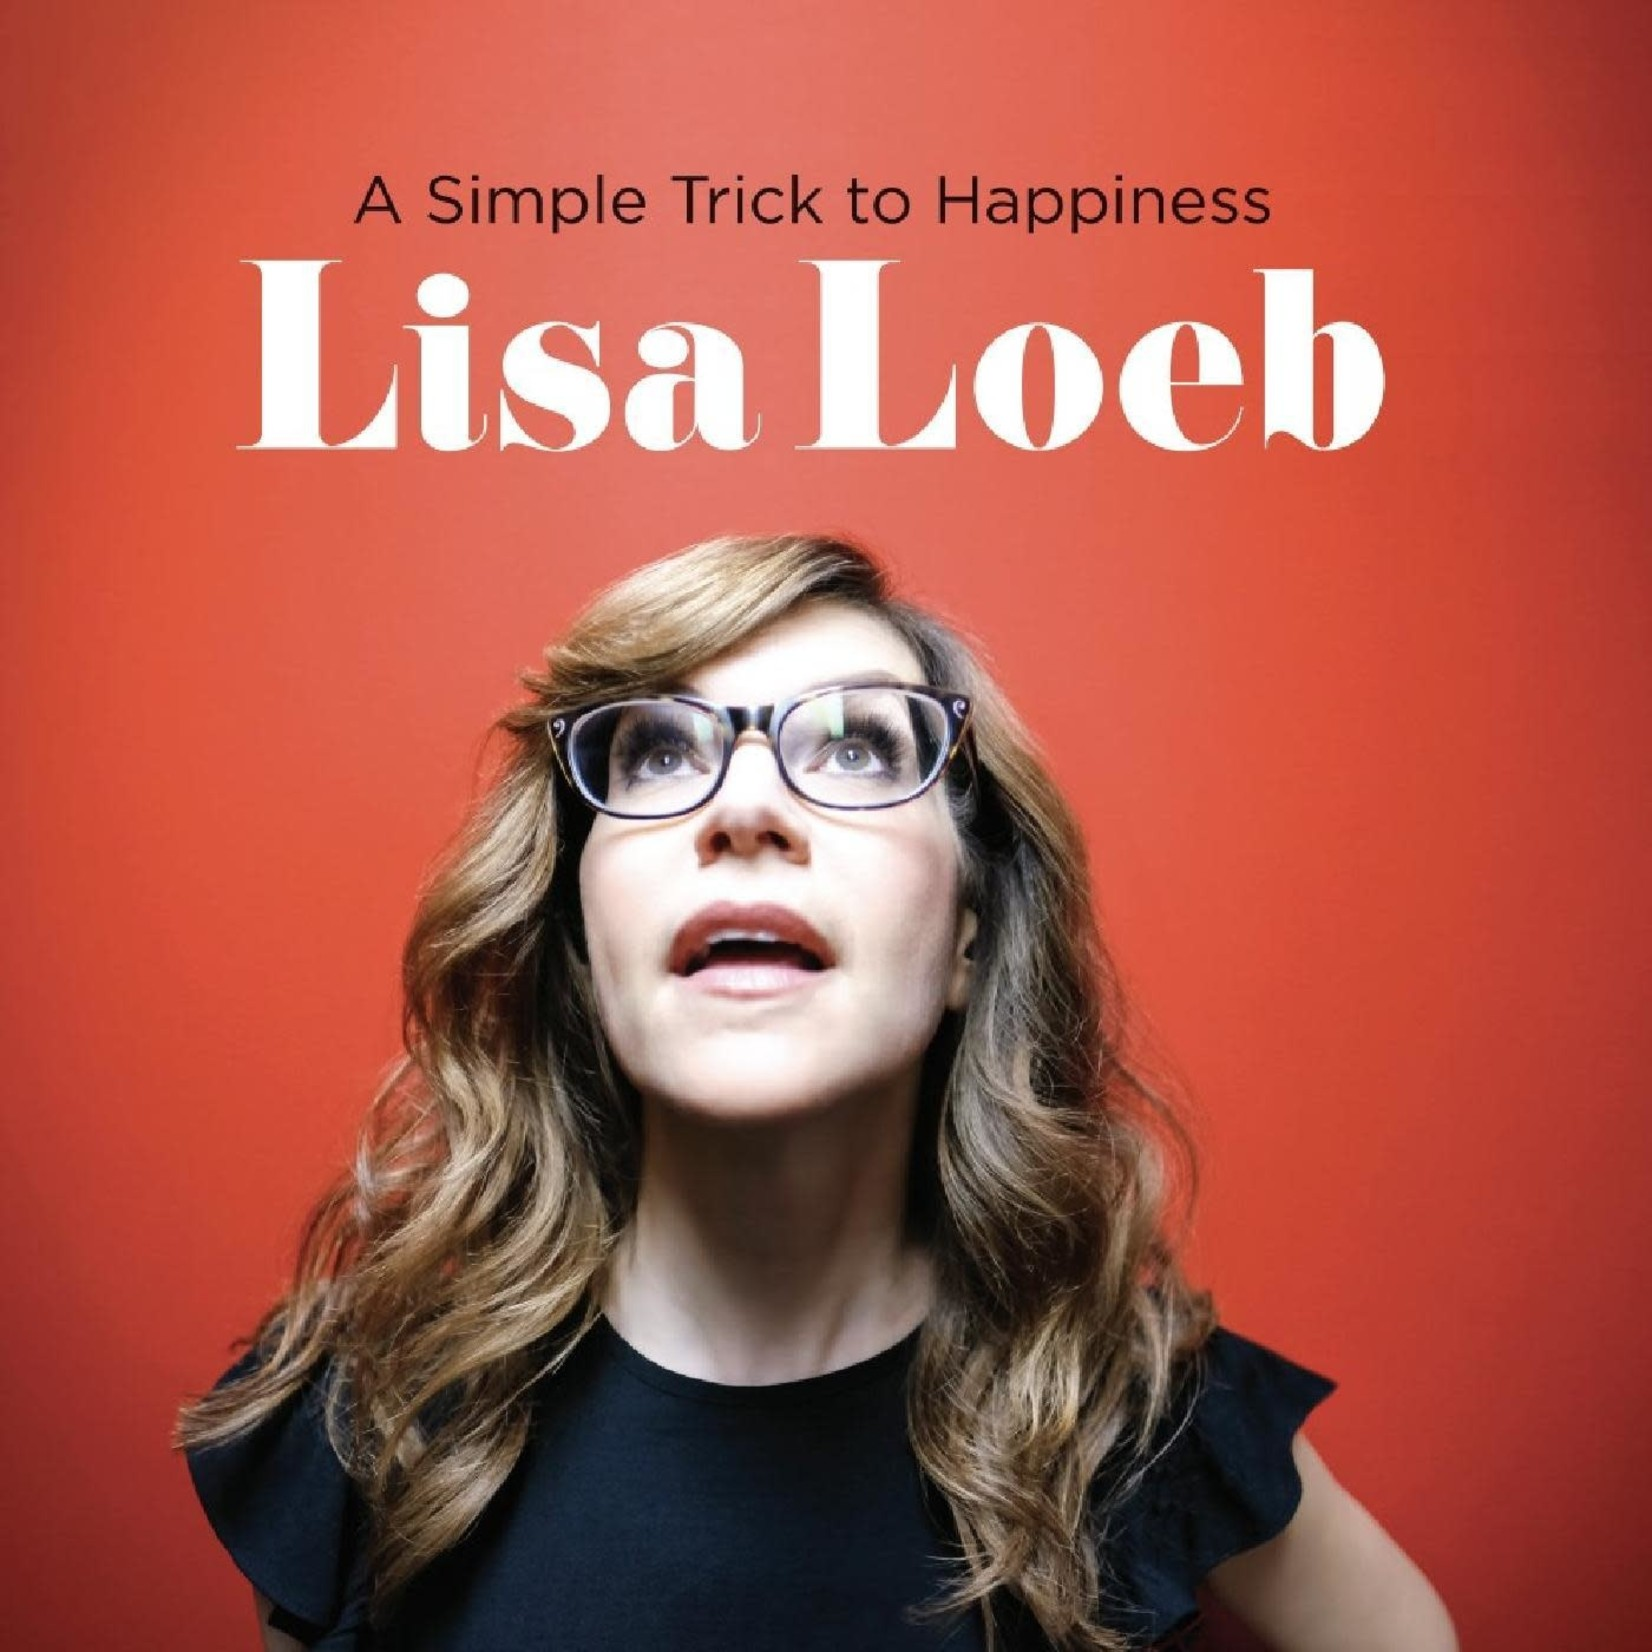 LISA LOEB A SIMPLE TRICK TO HAPPINESS